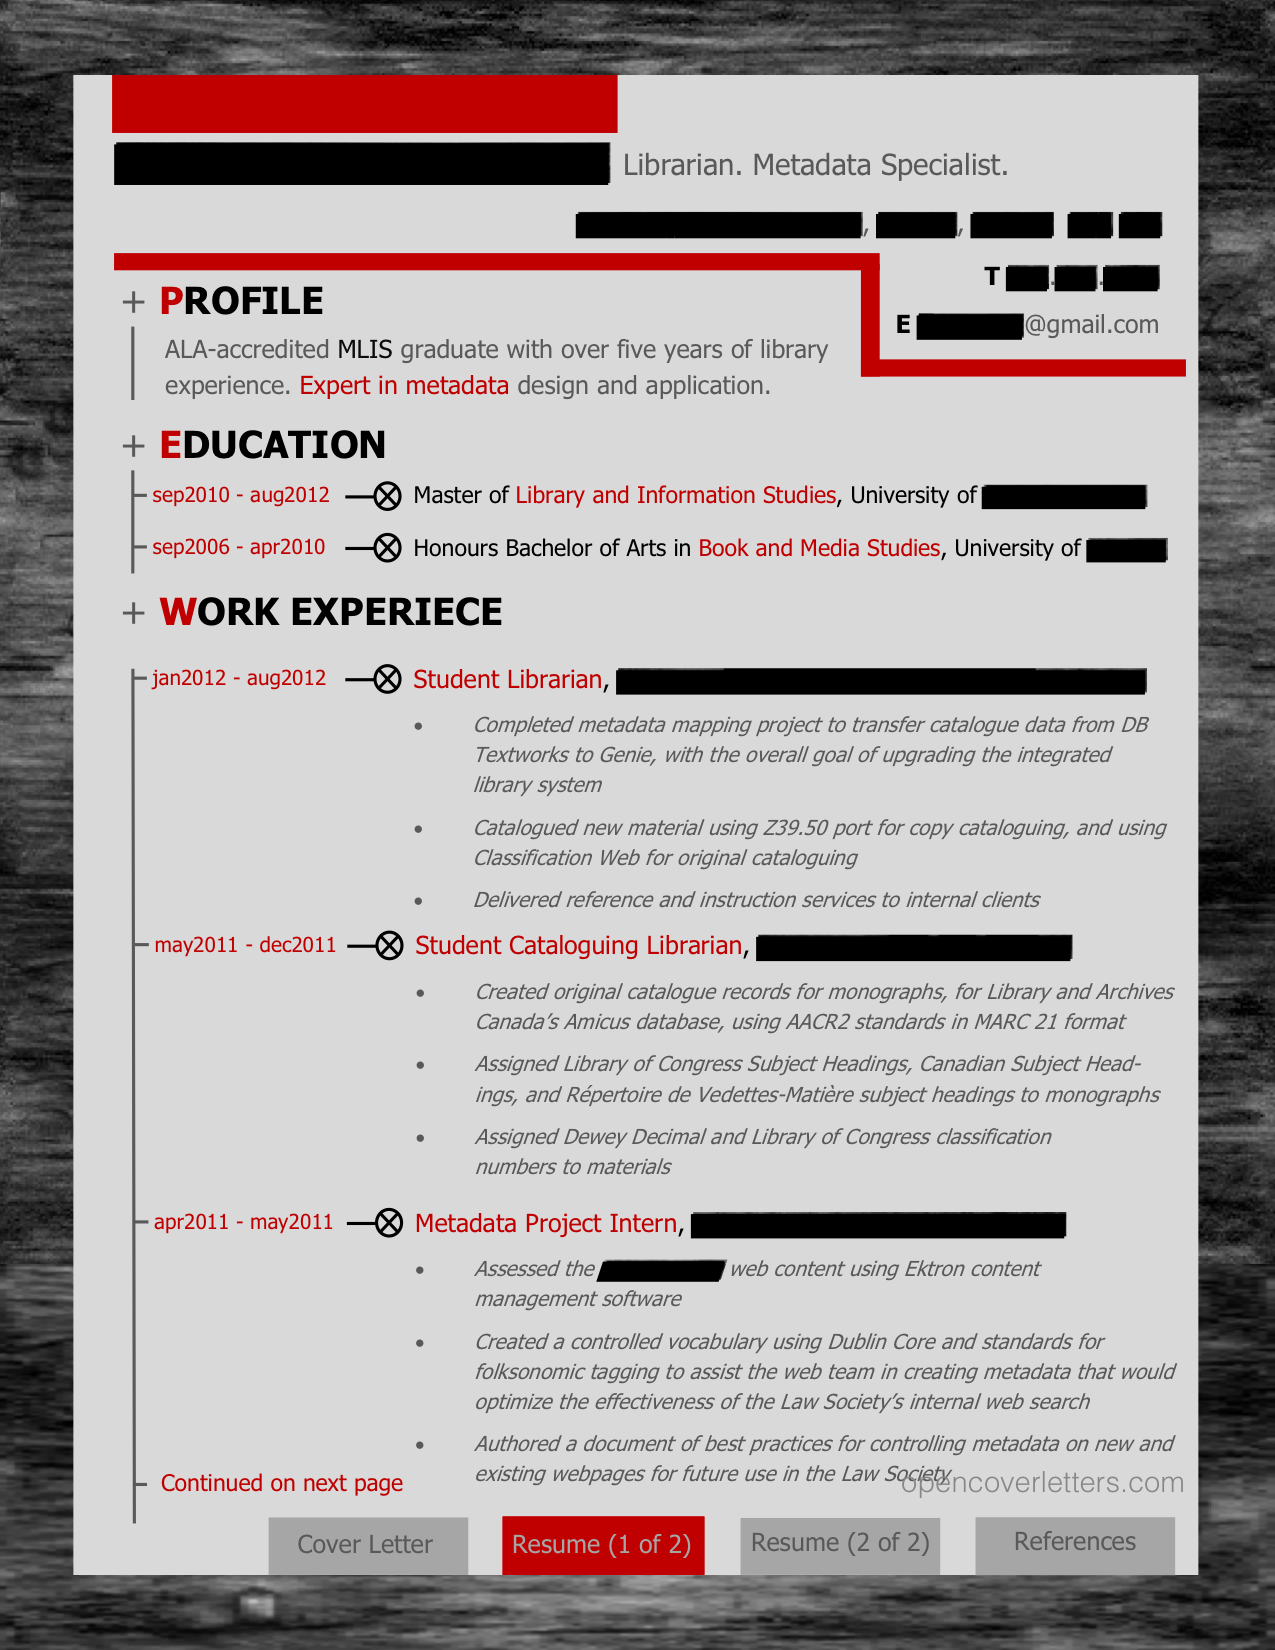 metadata librarian cover letter  resume and references